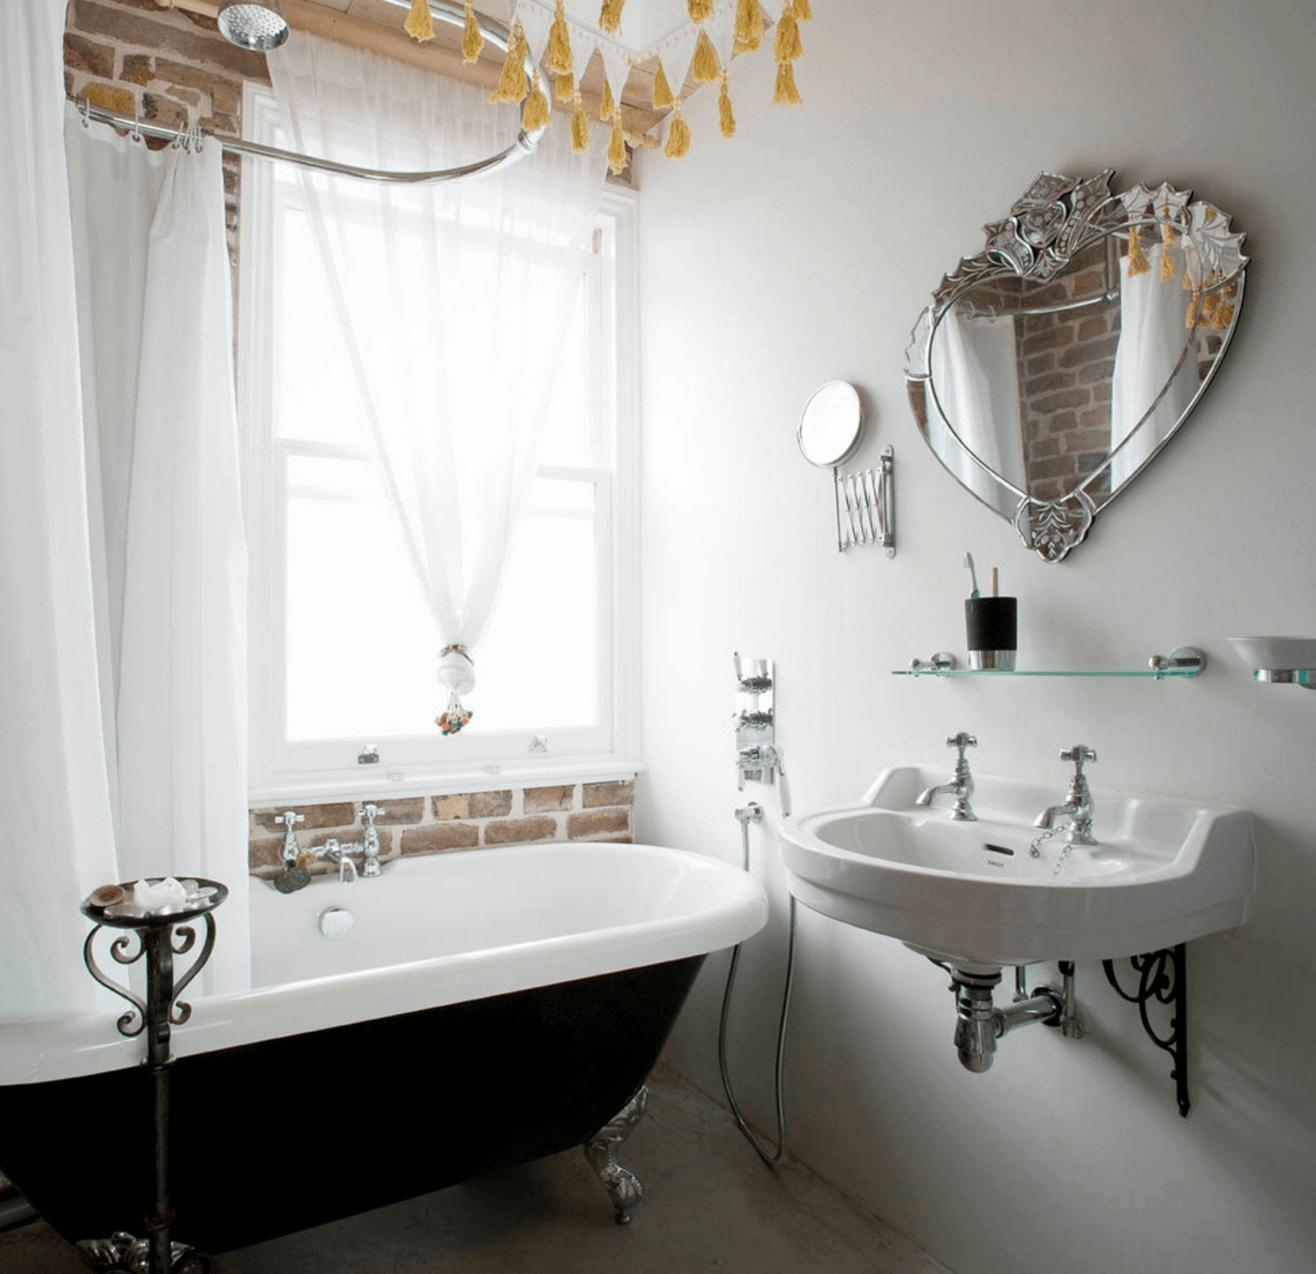 Fashionable Antique Bathroom Mirror 14 Best Vintage Light And For Vintage Style Mirrors (Image 10 of 20)